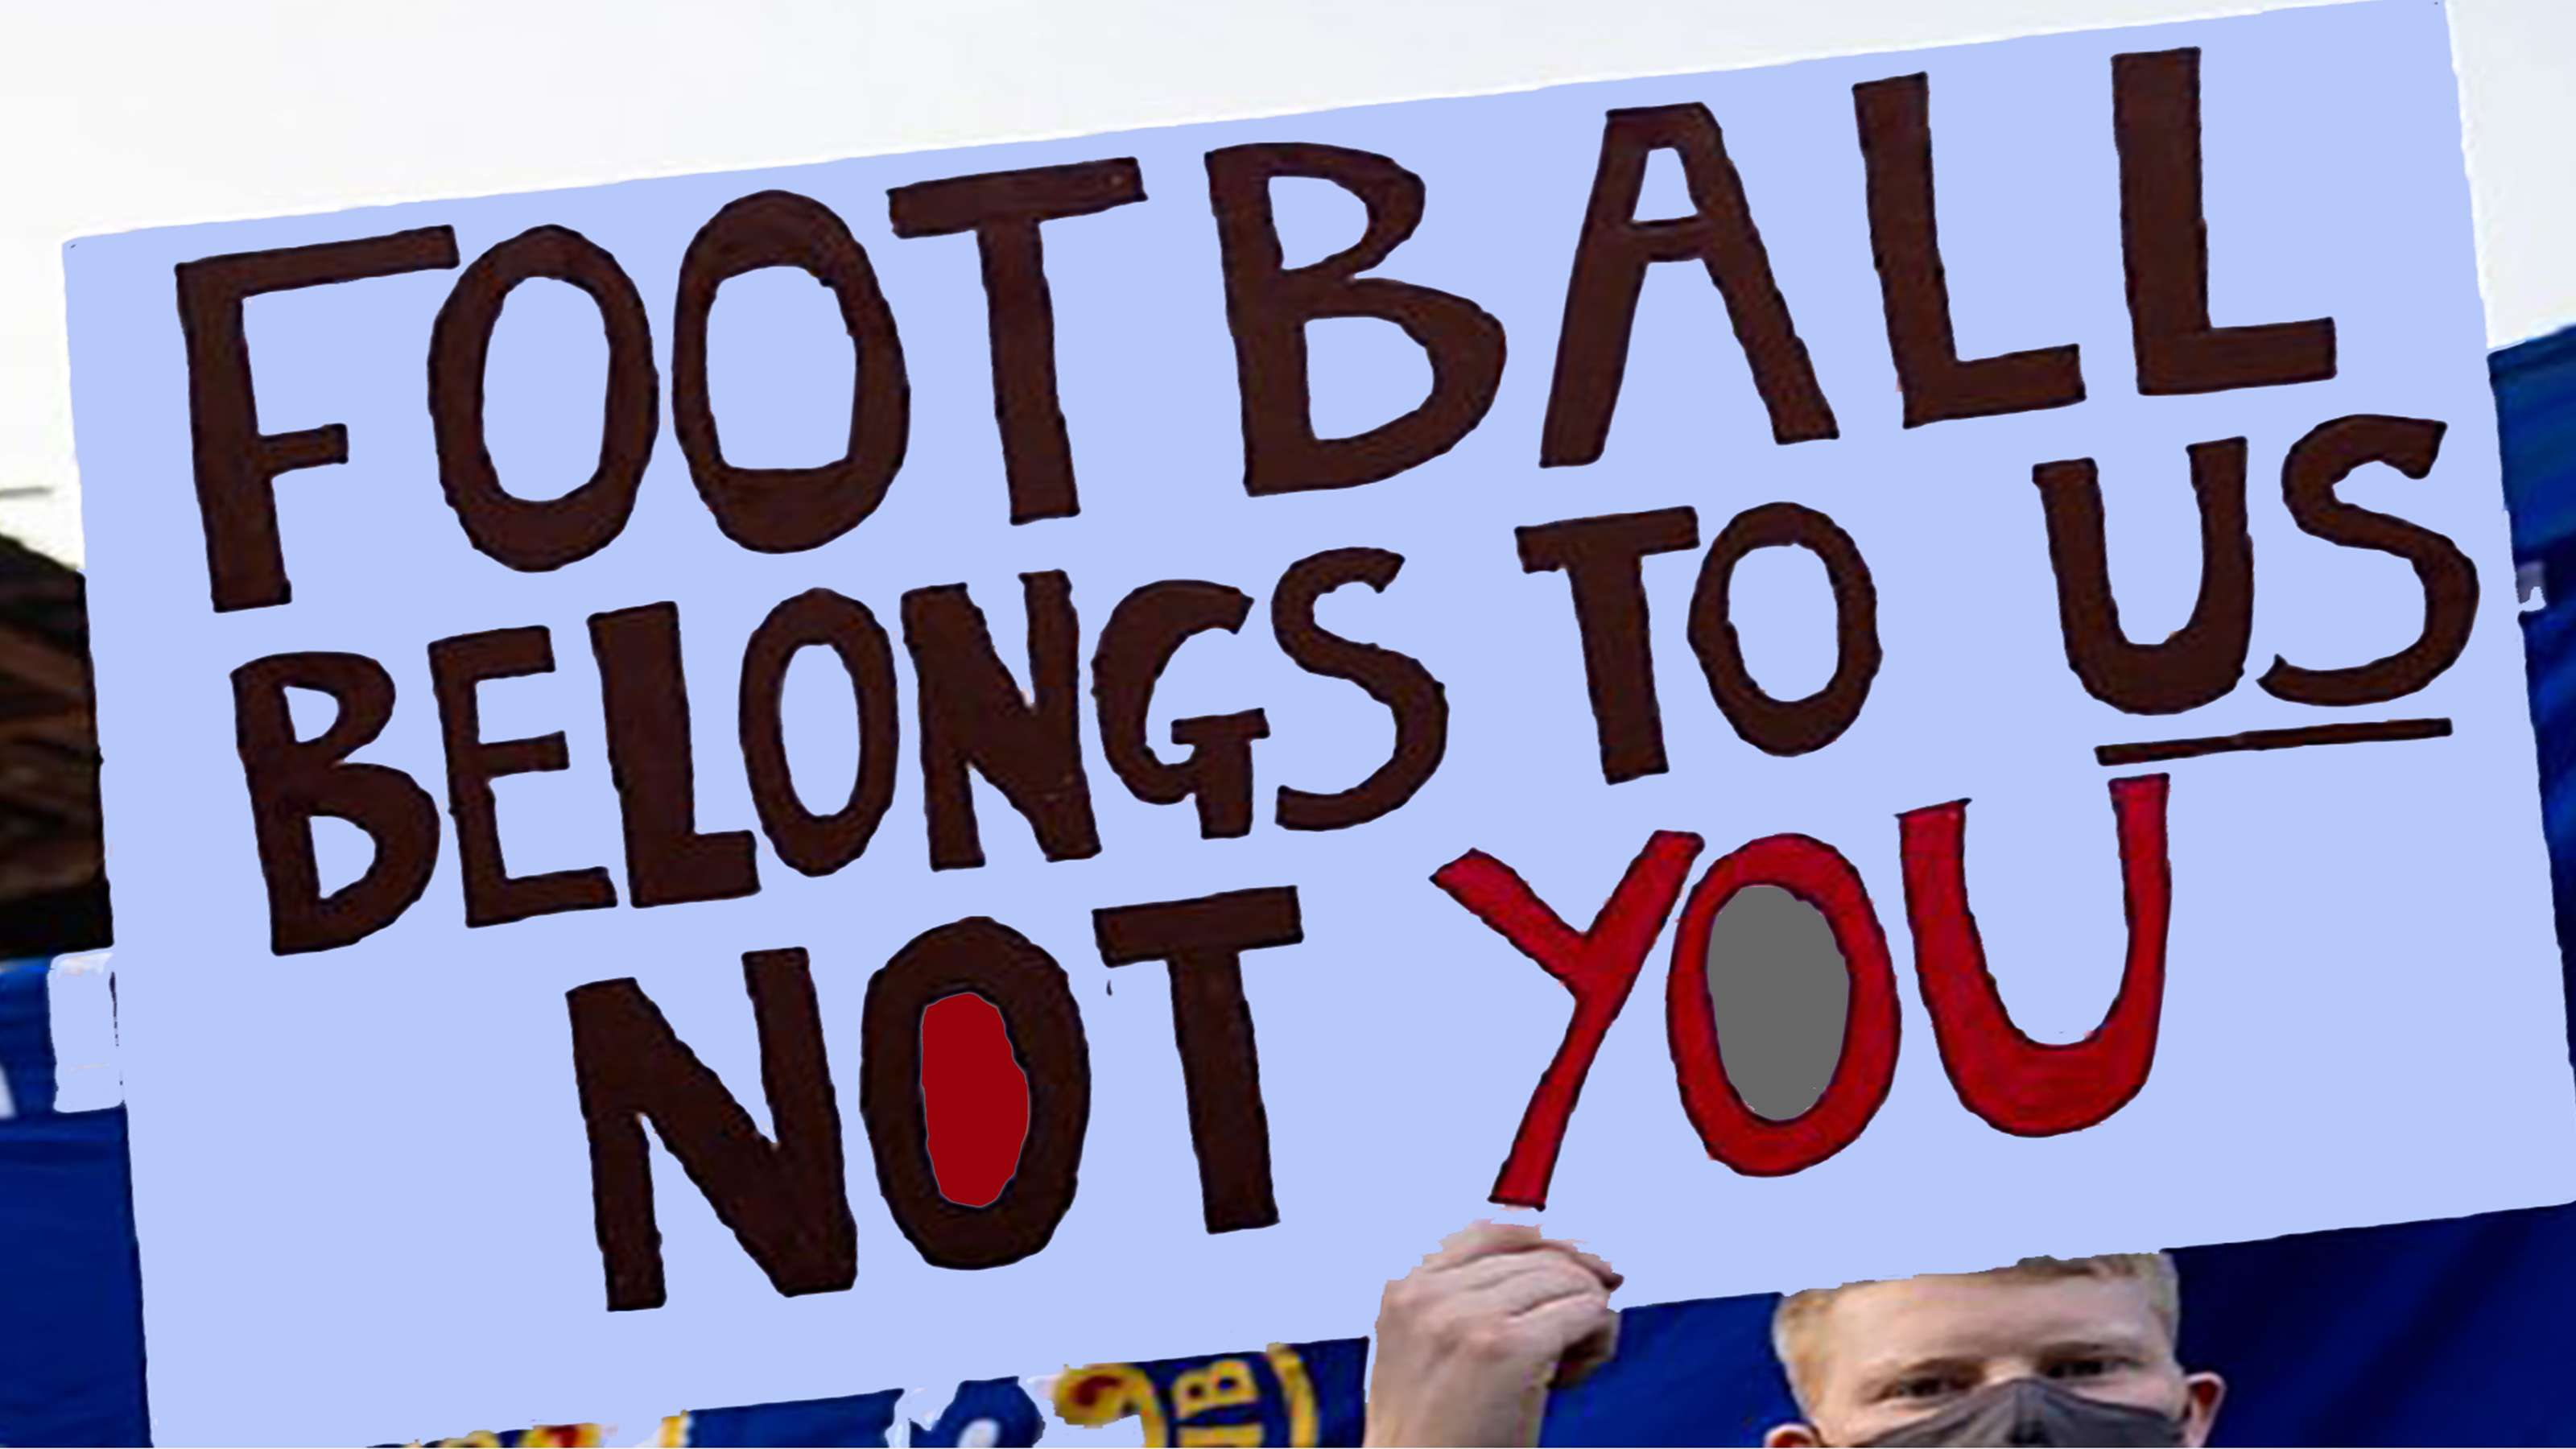 Football belonged to us not to you